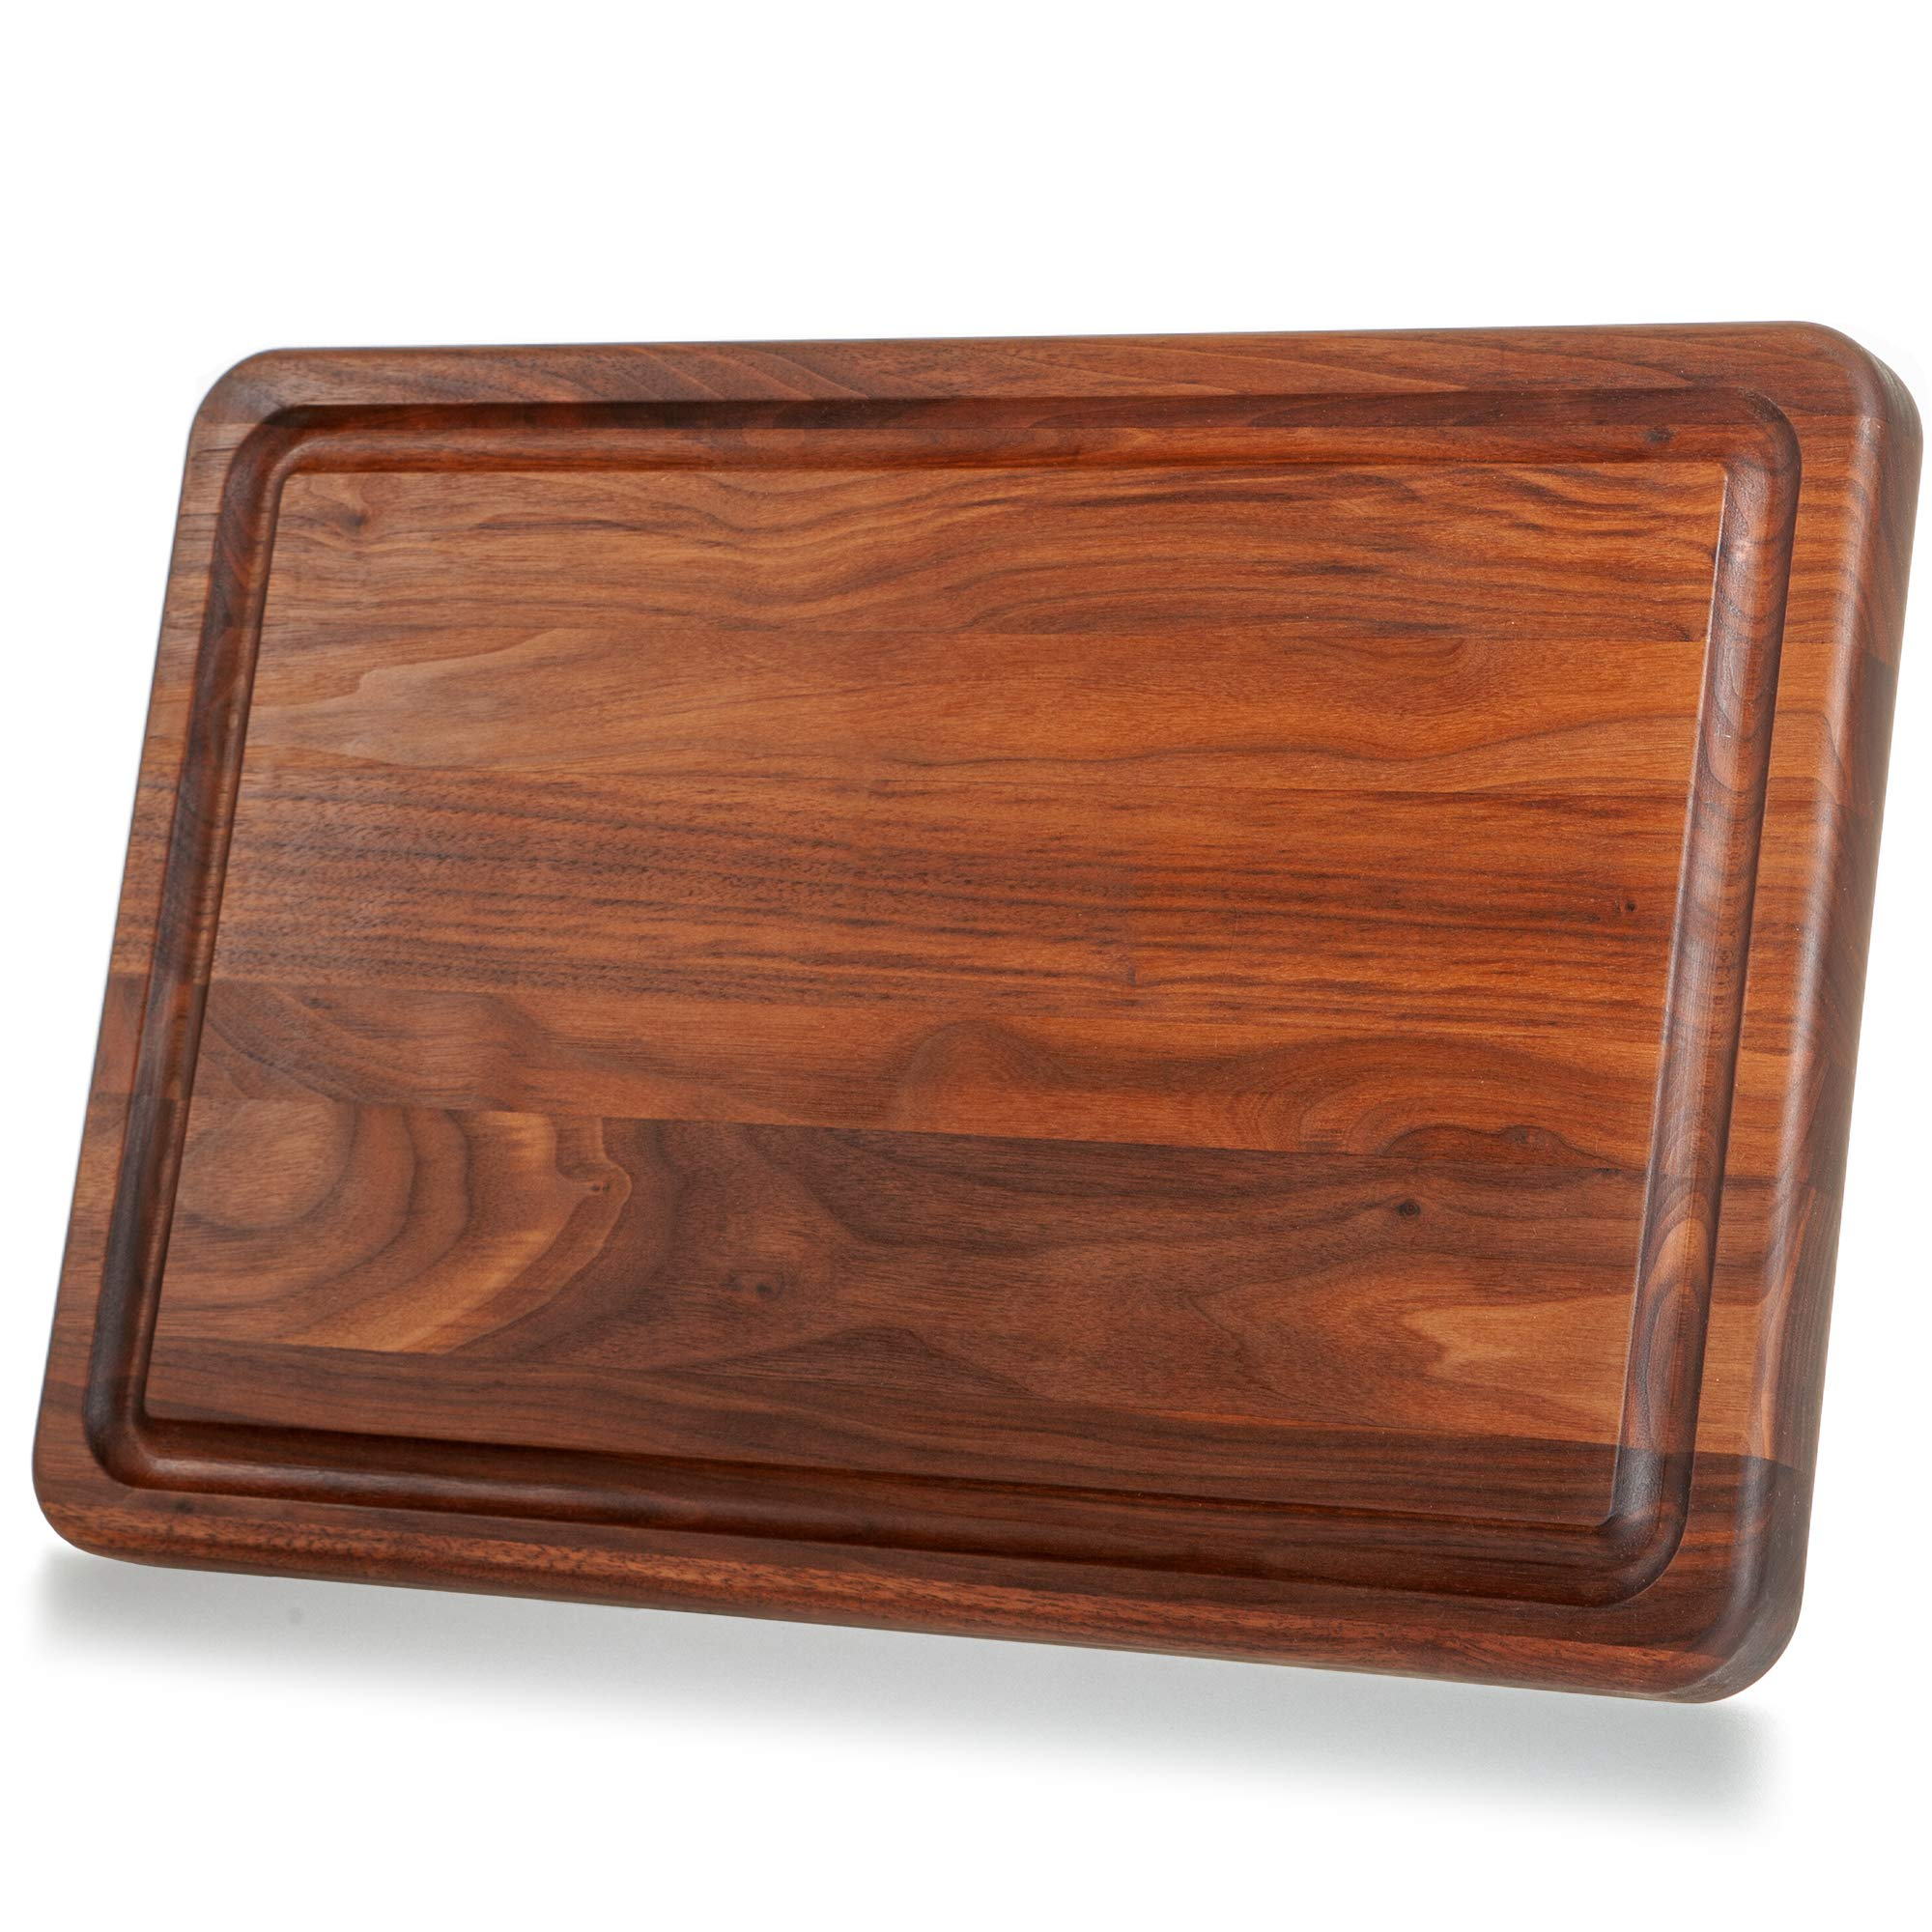 Large Walnut Wood Butcher Block by Mevell with Juice Drip Groove, Big Hardwood Chopping and Carving Countertop Block, Made in Canada (Walnut, 18x12x1.25)